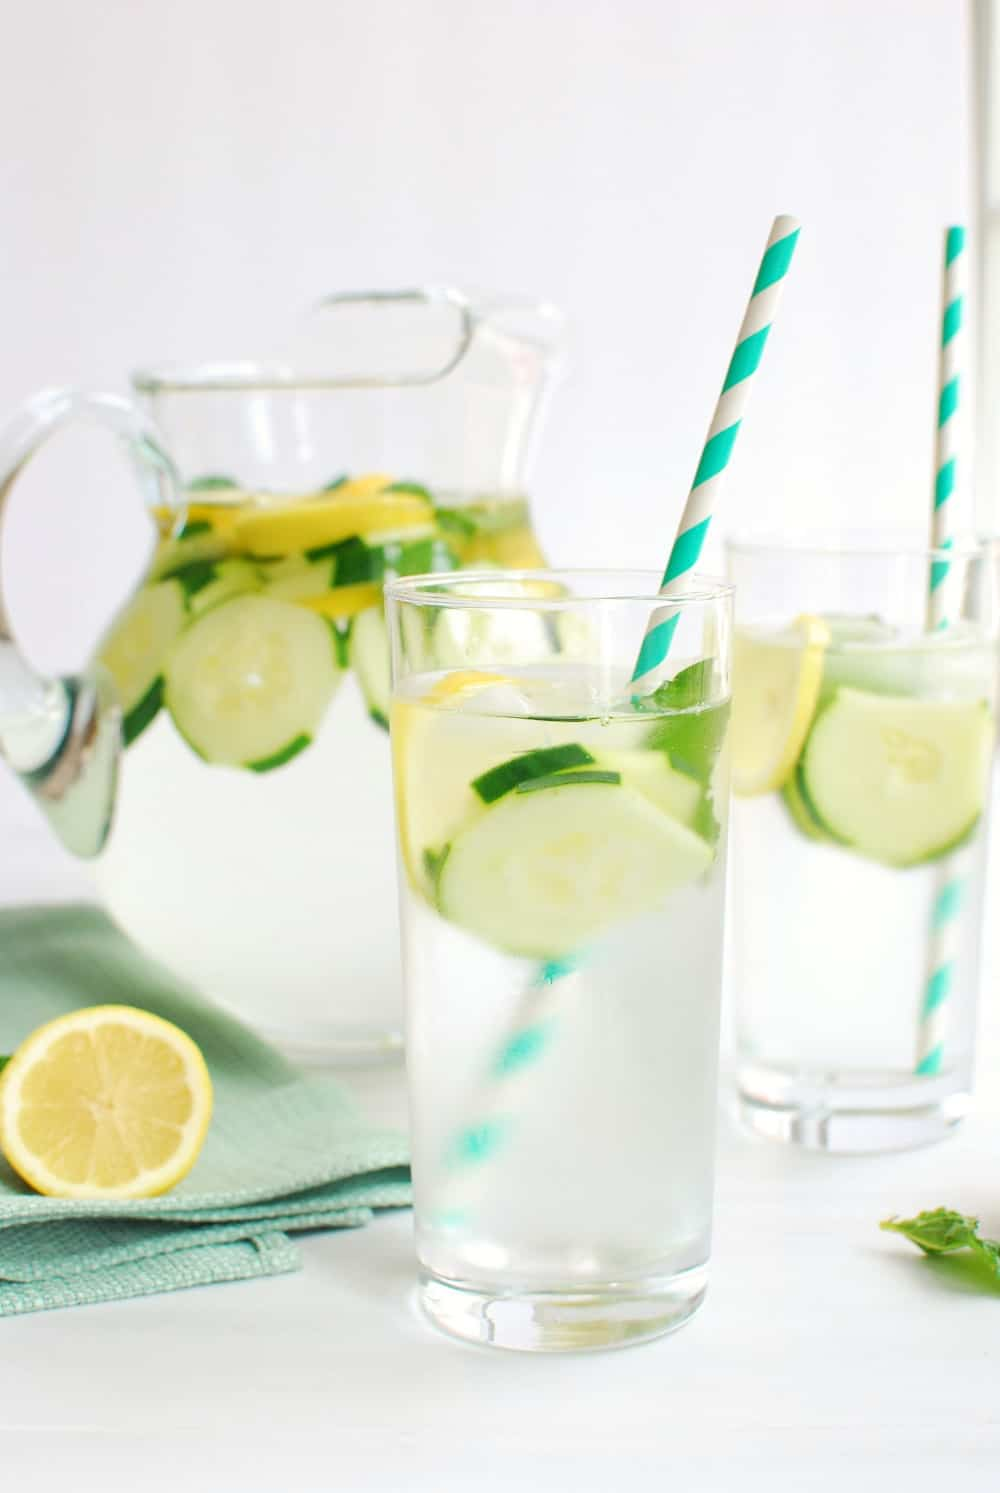 Glass full of infused cucumber lemon mint water